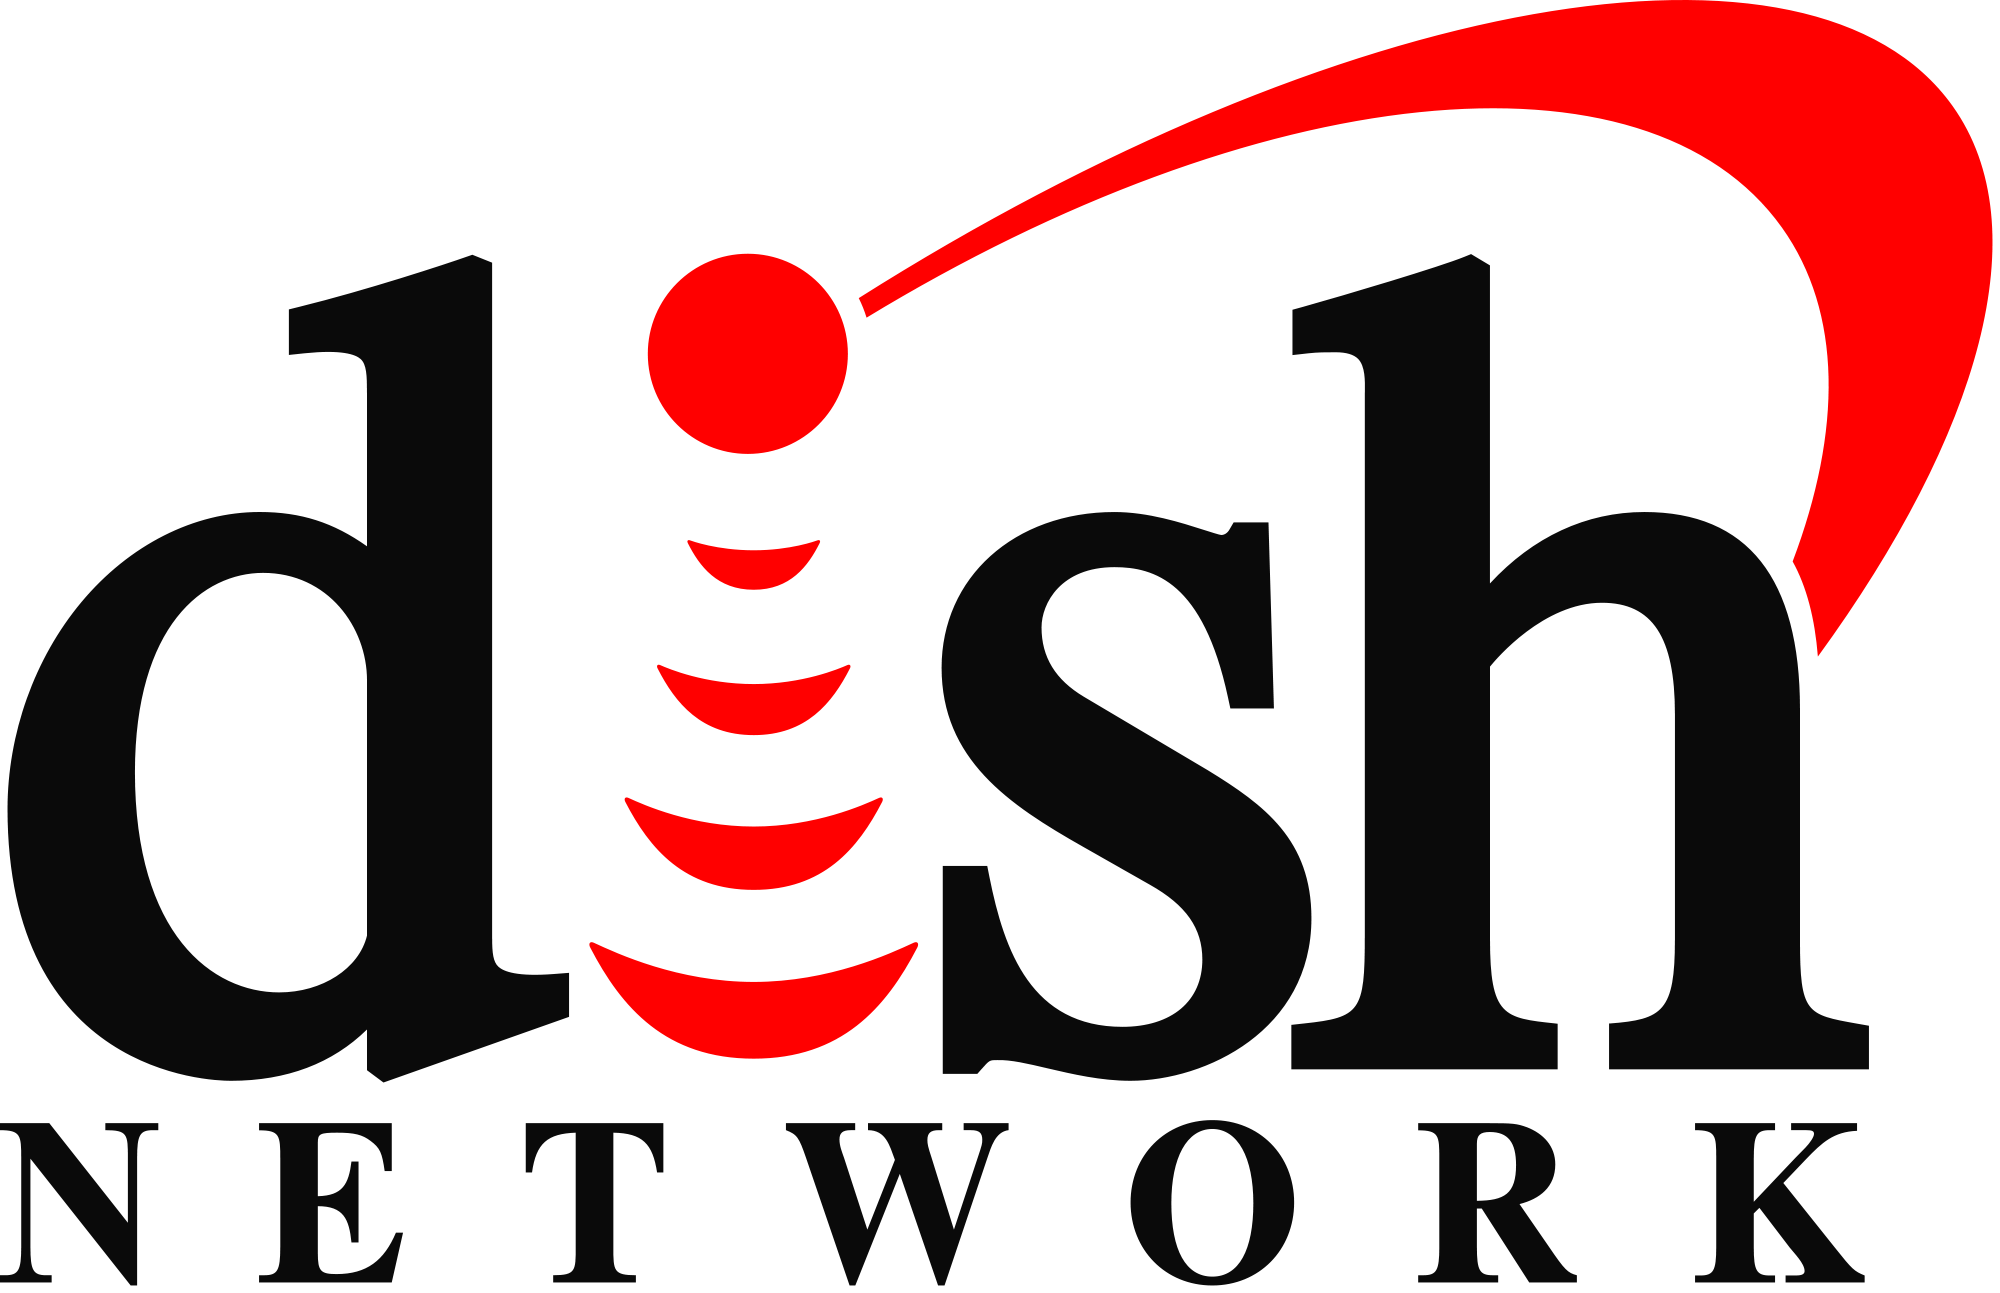 You could receive $1200 from Dish Network lawsuit